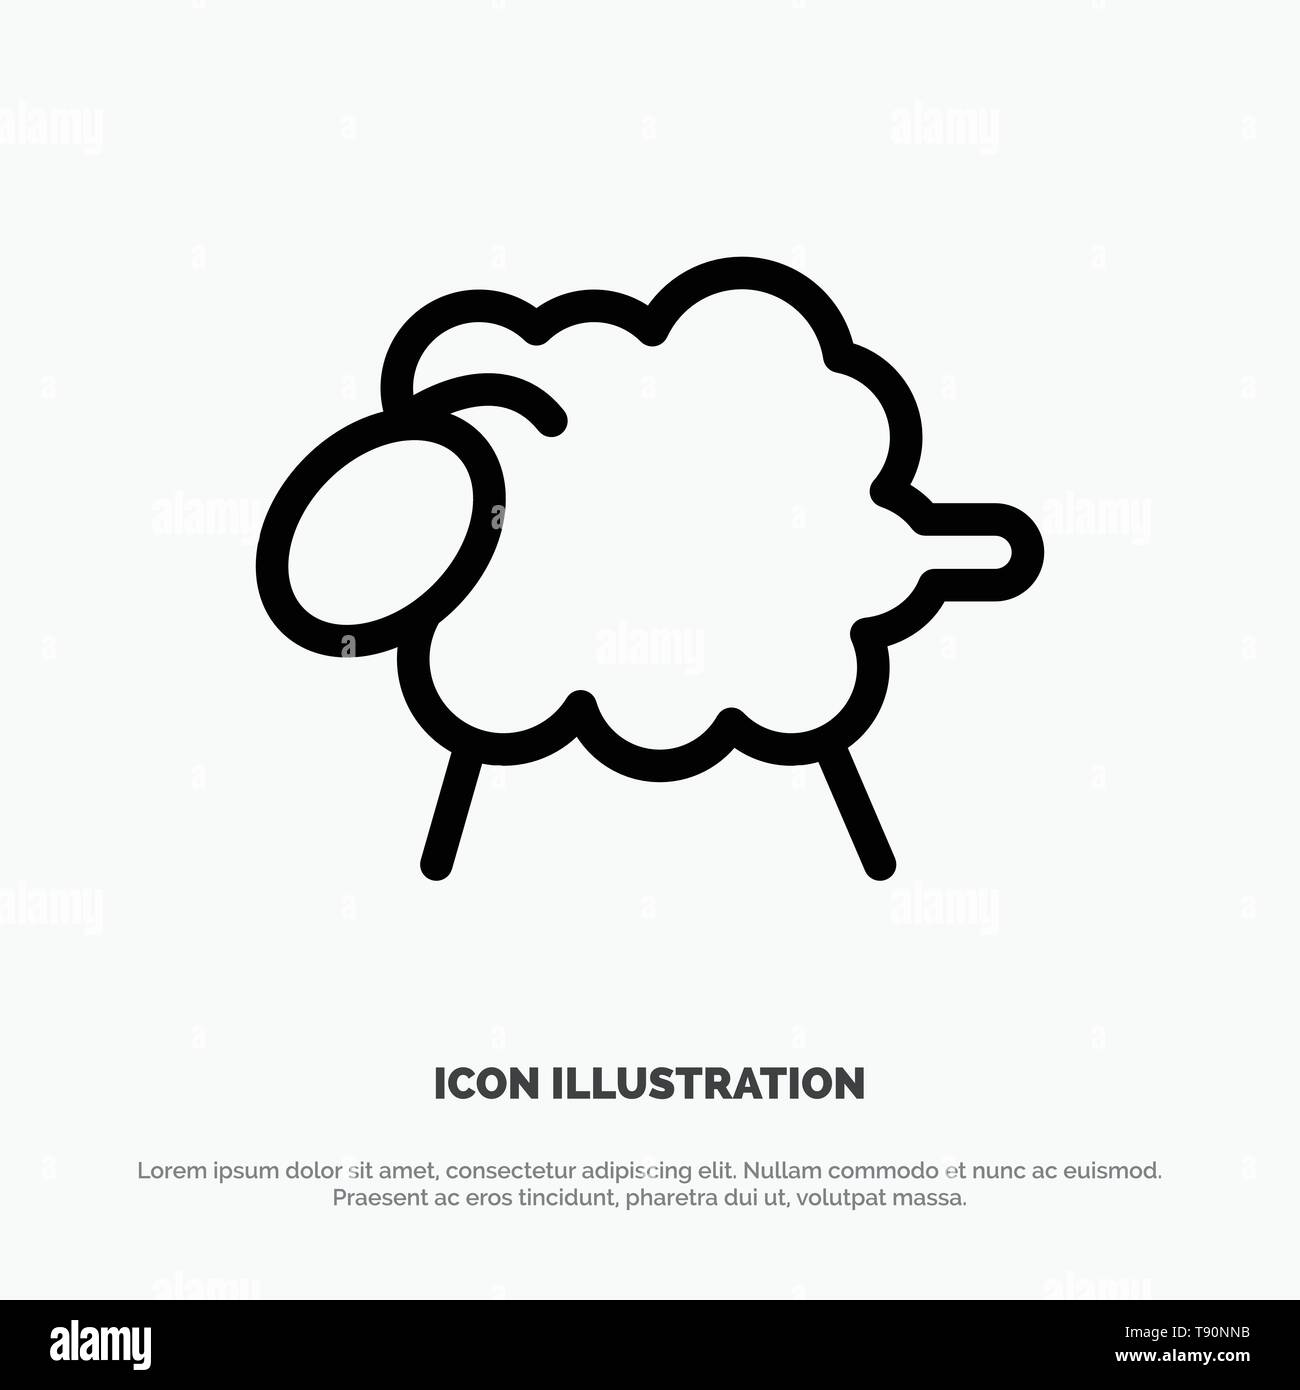 Lamb, Sheep, Wool, Easter Line Icon Vector - Stock Vector